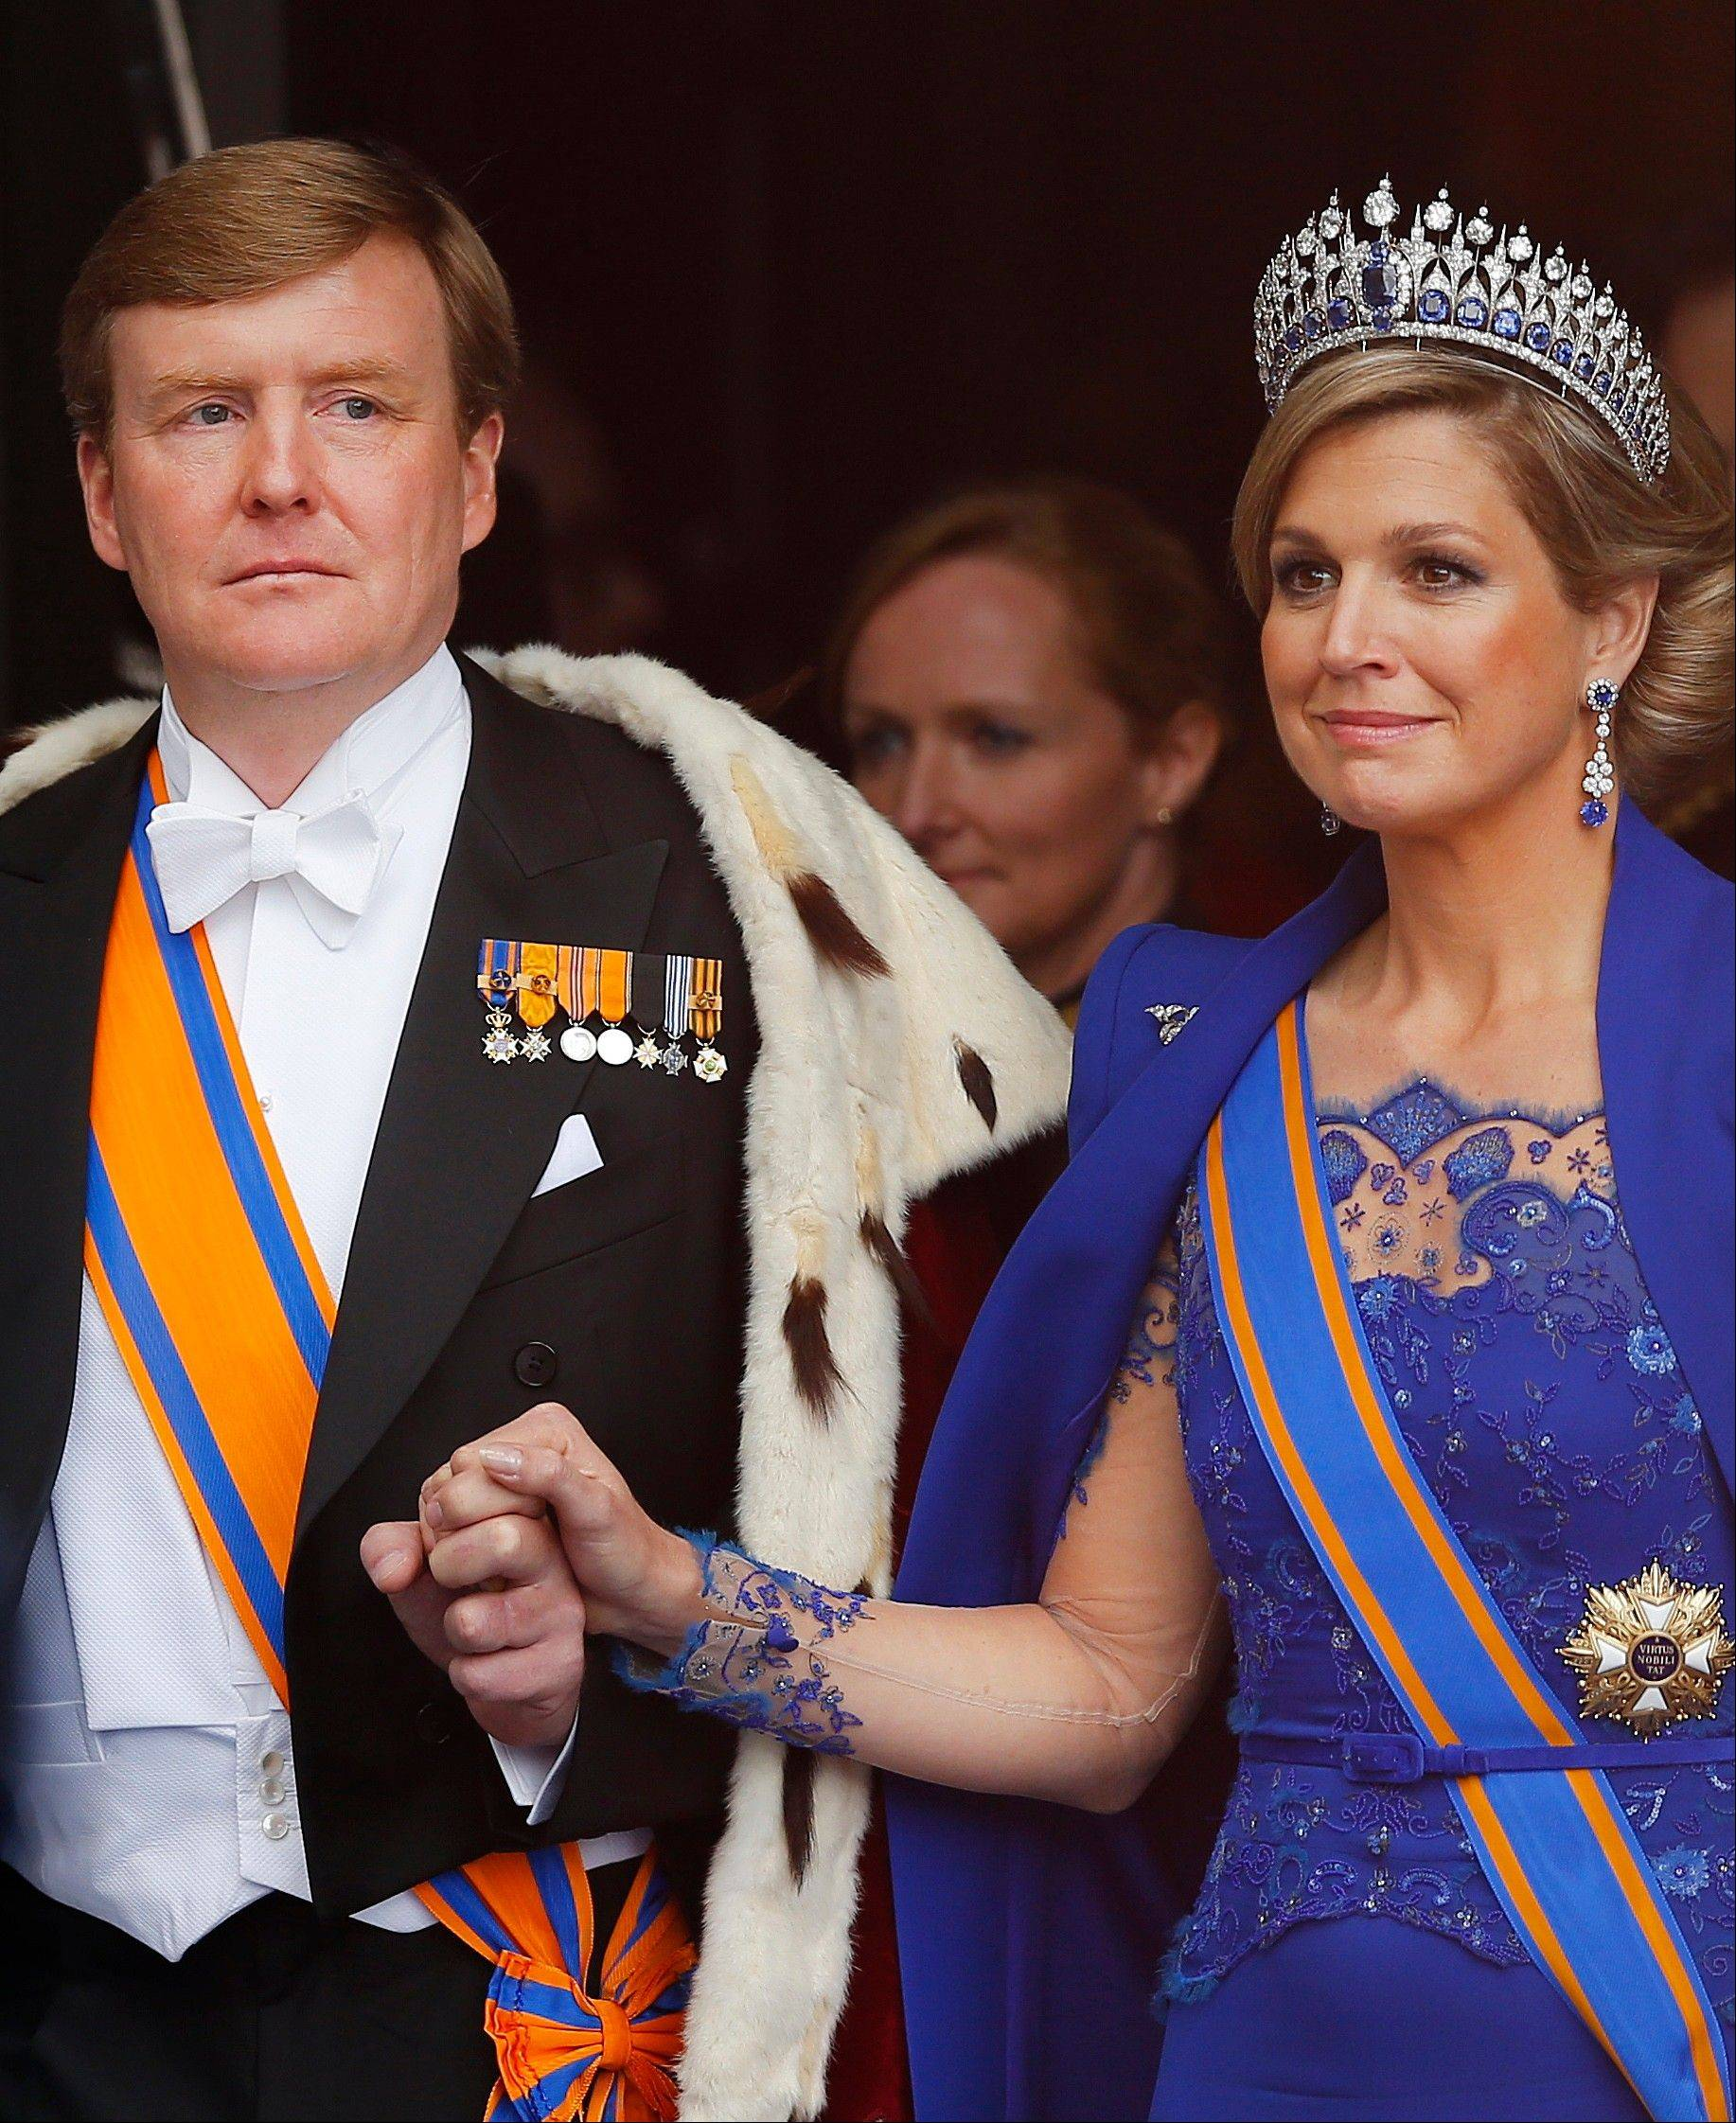 Dutch King Willem-Alexander and his wife Queen Maxima leave the Nieuwe Kerk or New Church in Amsterdam, The Netherlands, after his inauguration Tuesday April 30, 2013. Around a million people are expected to descend on the Dutch capital for a huge street party to celebrate the first new Dutch monarch in 33 years.